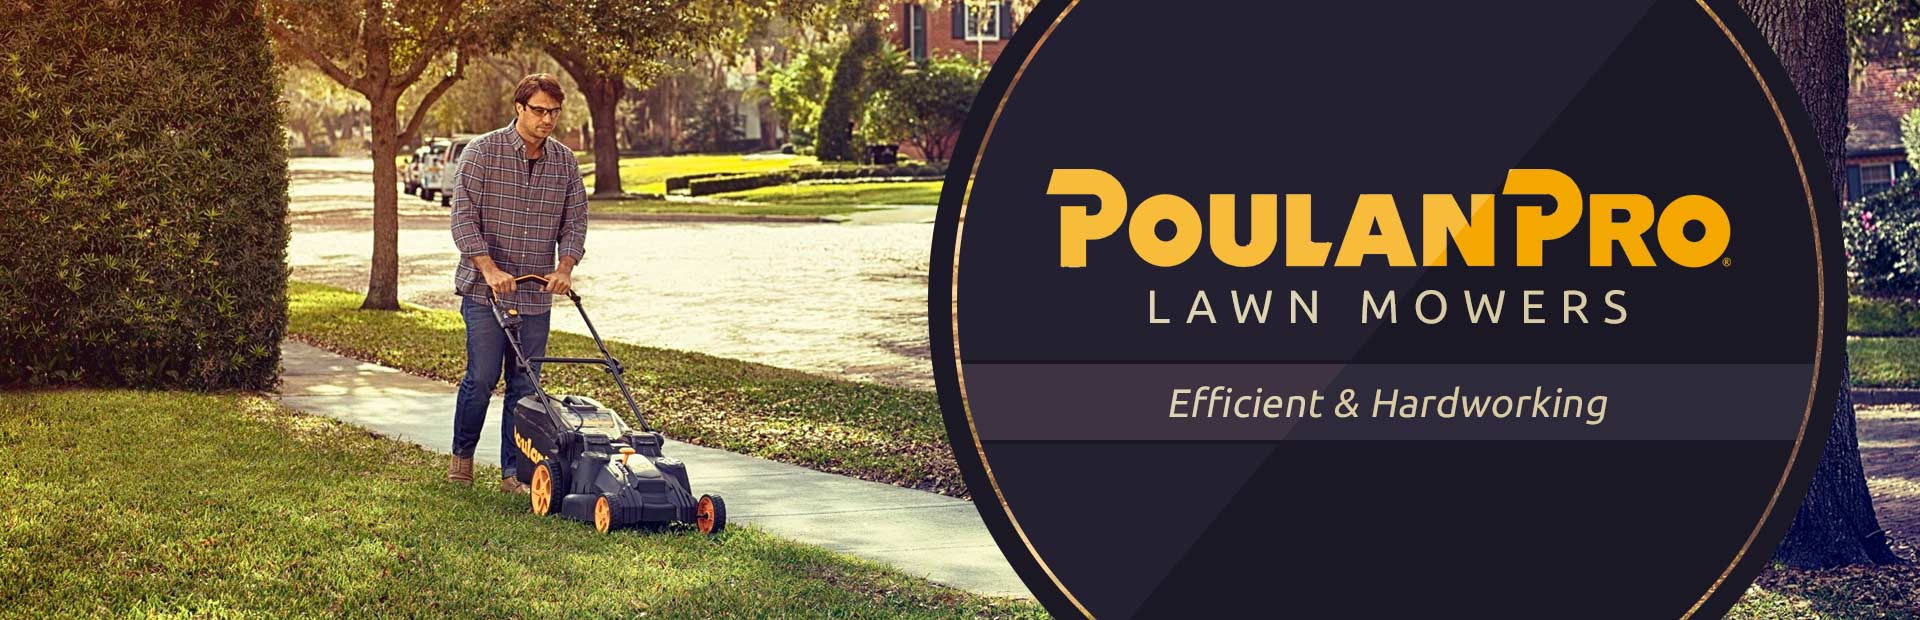 Poulan Pro Lawn Mowers: Click here to view the models.